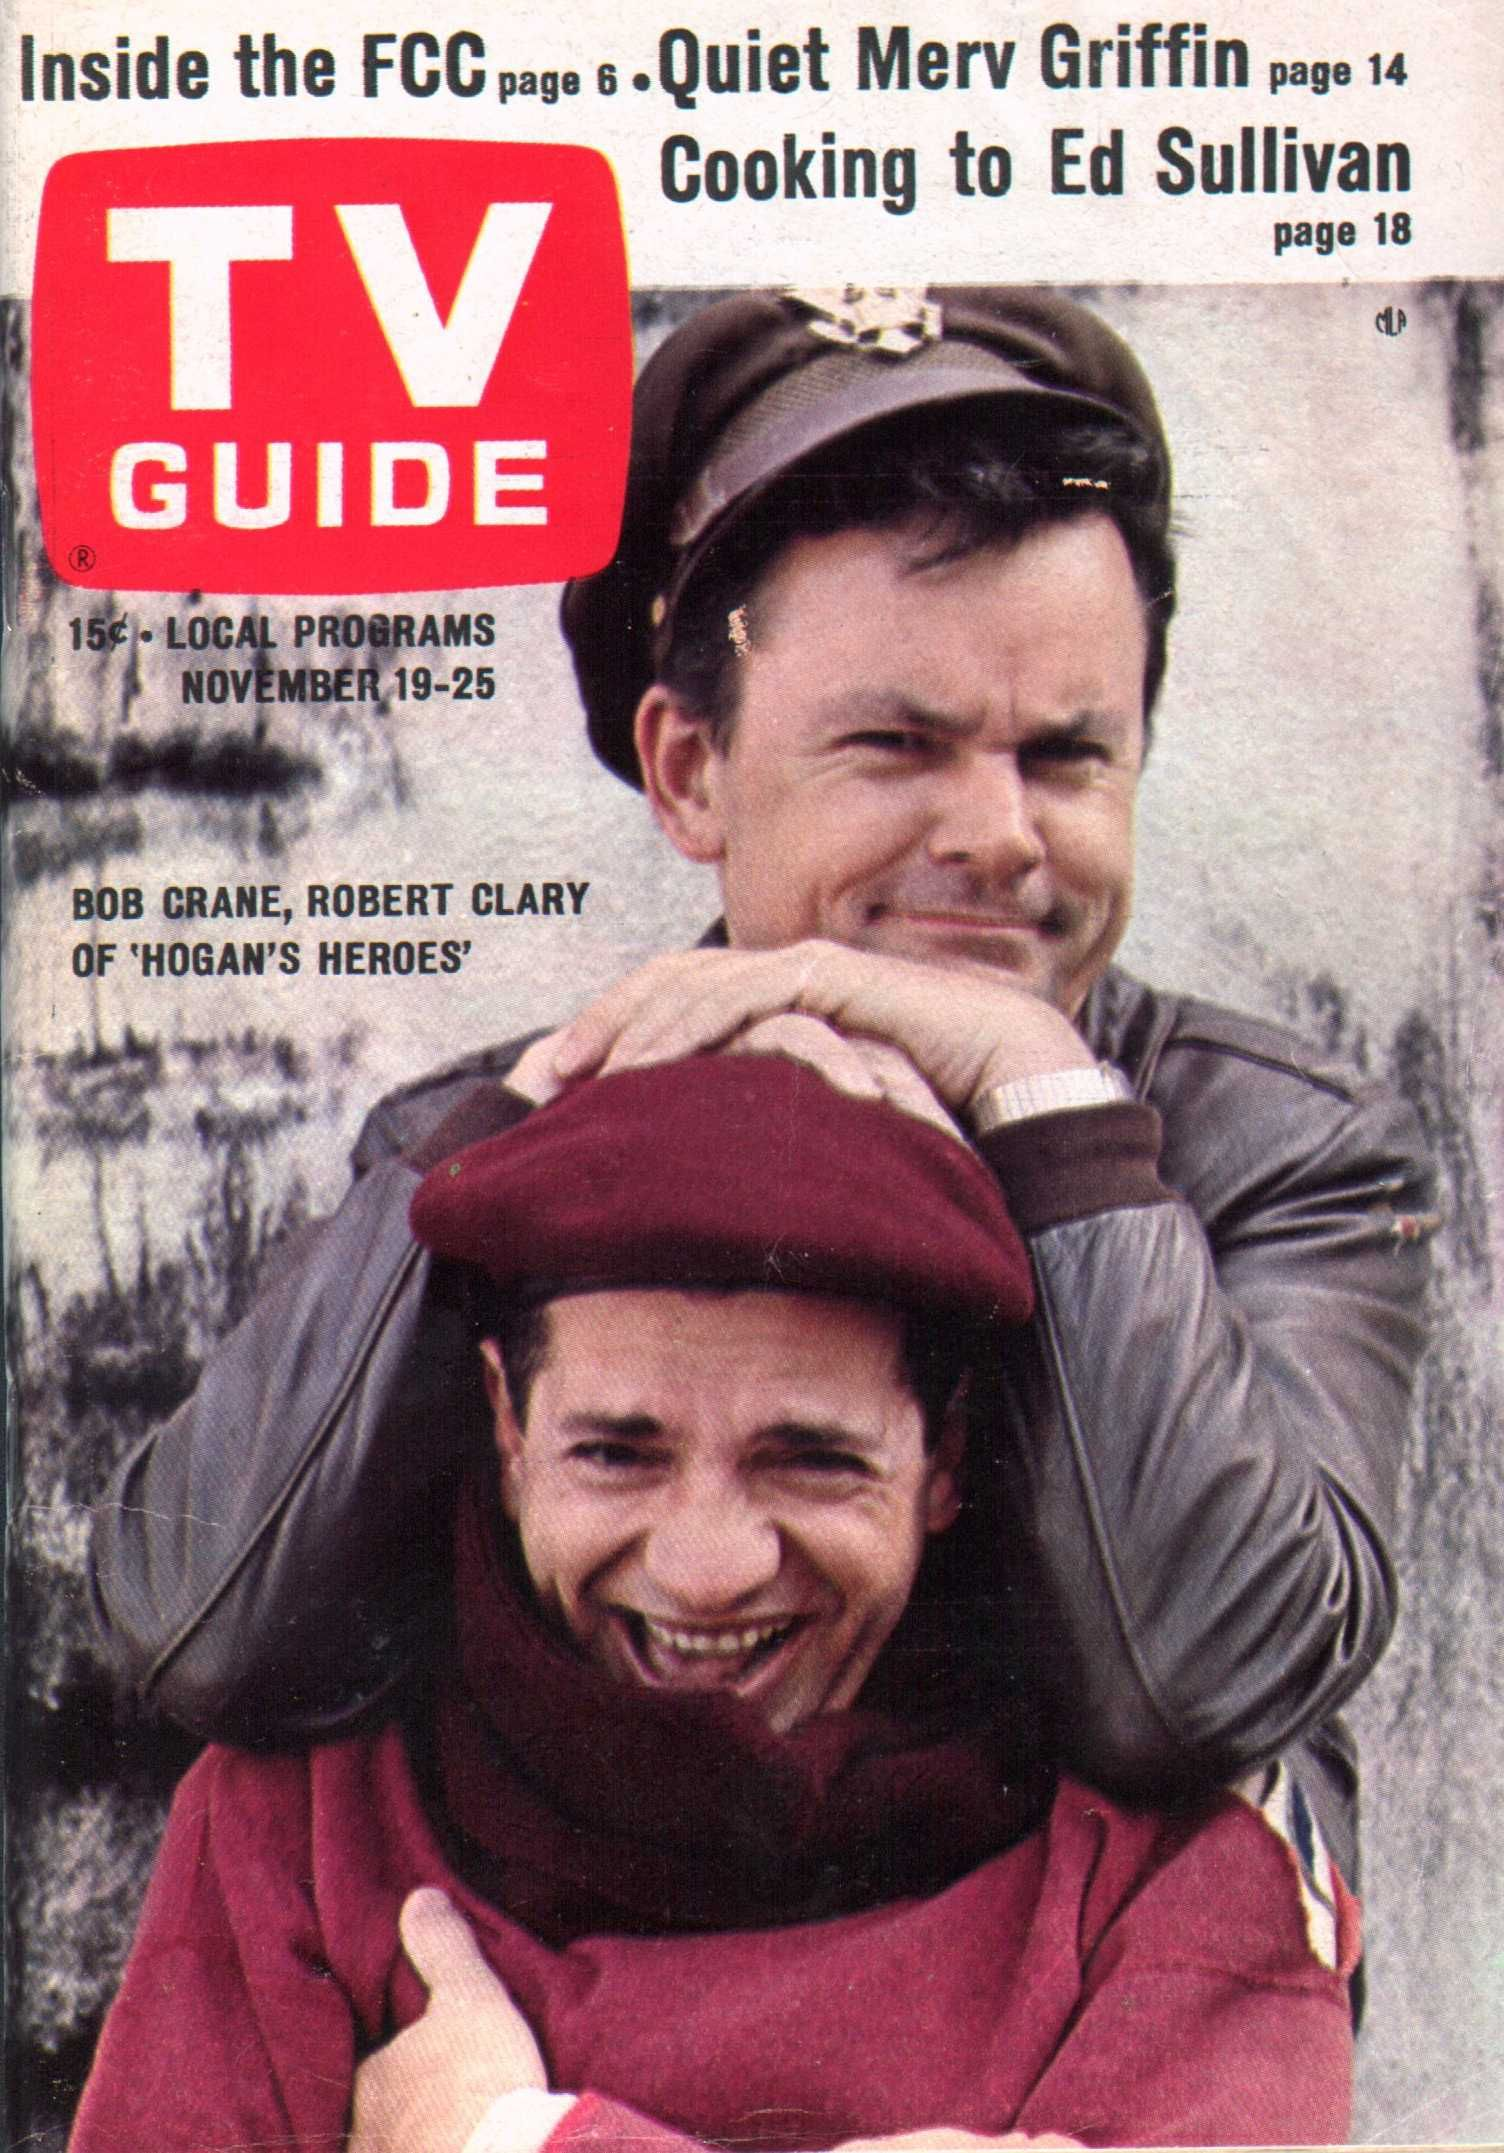 Labeau from TV Show, Hogan's Heroes Tv guide, Hogans heroes